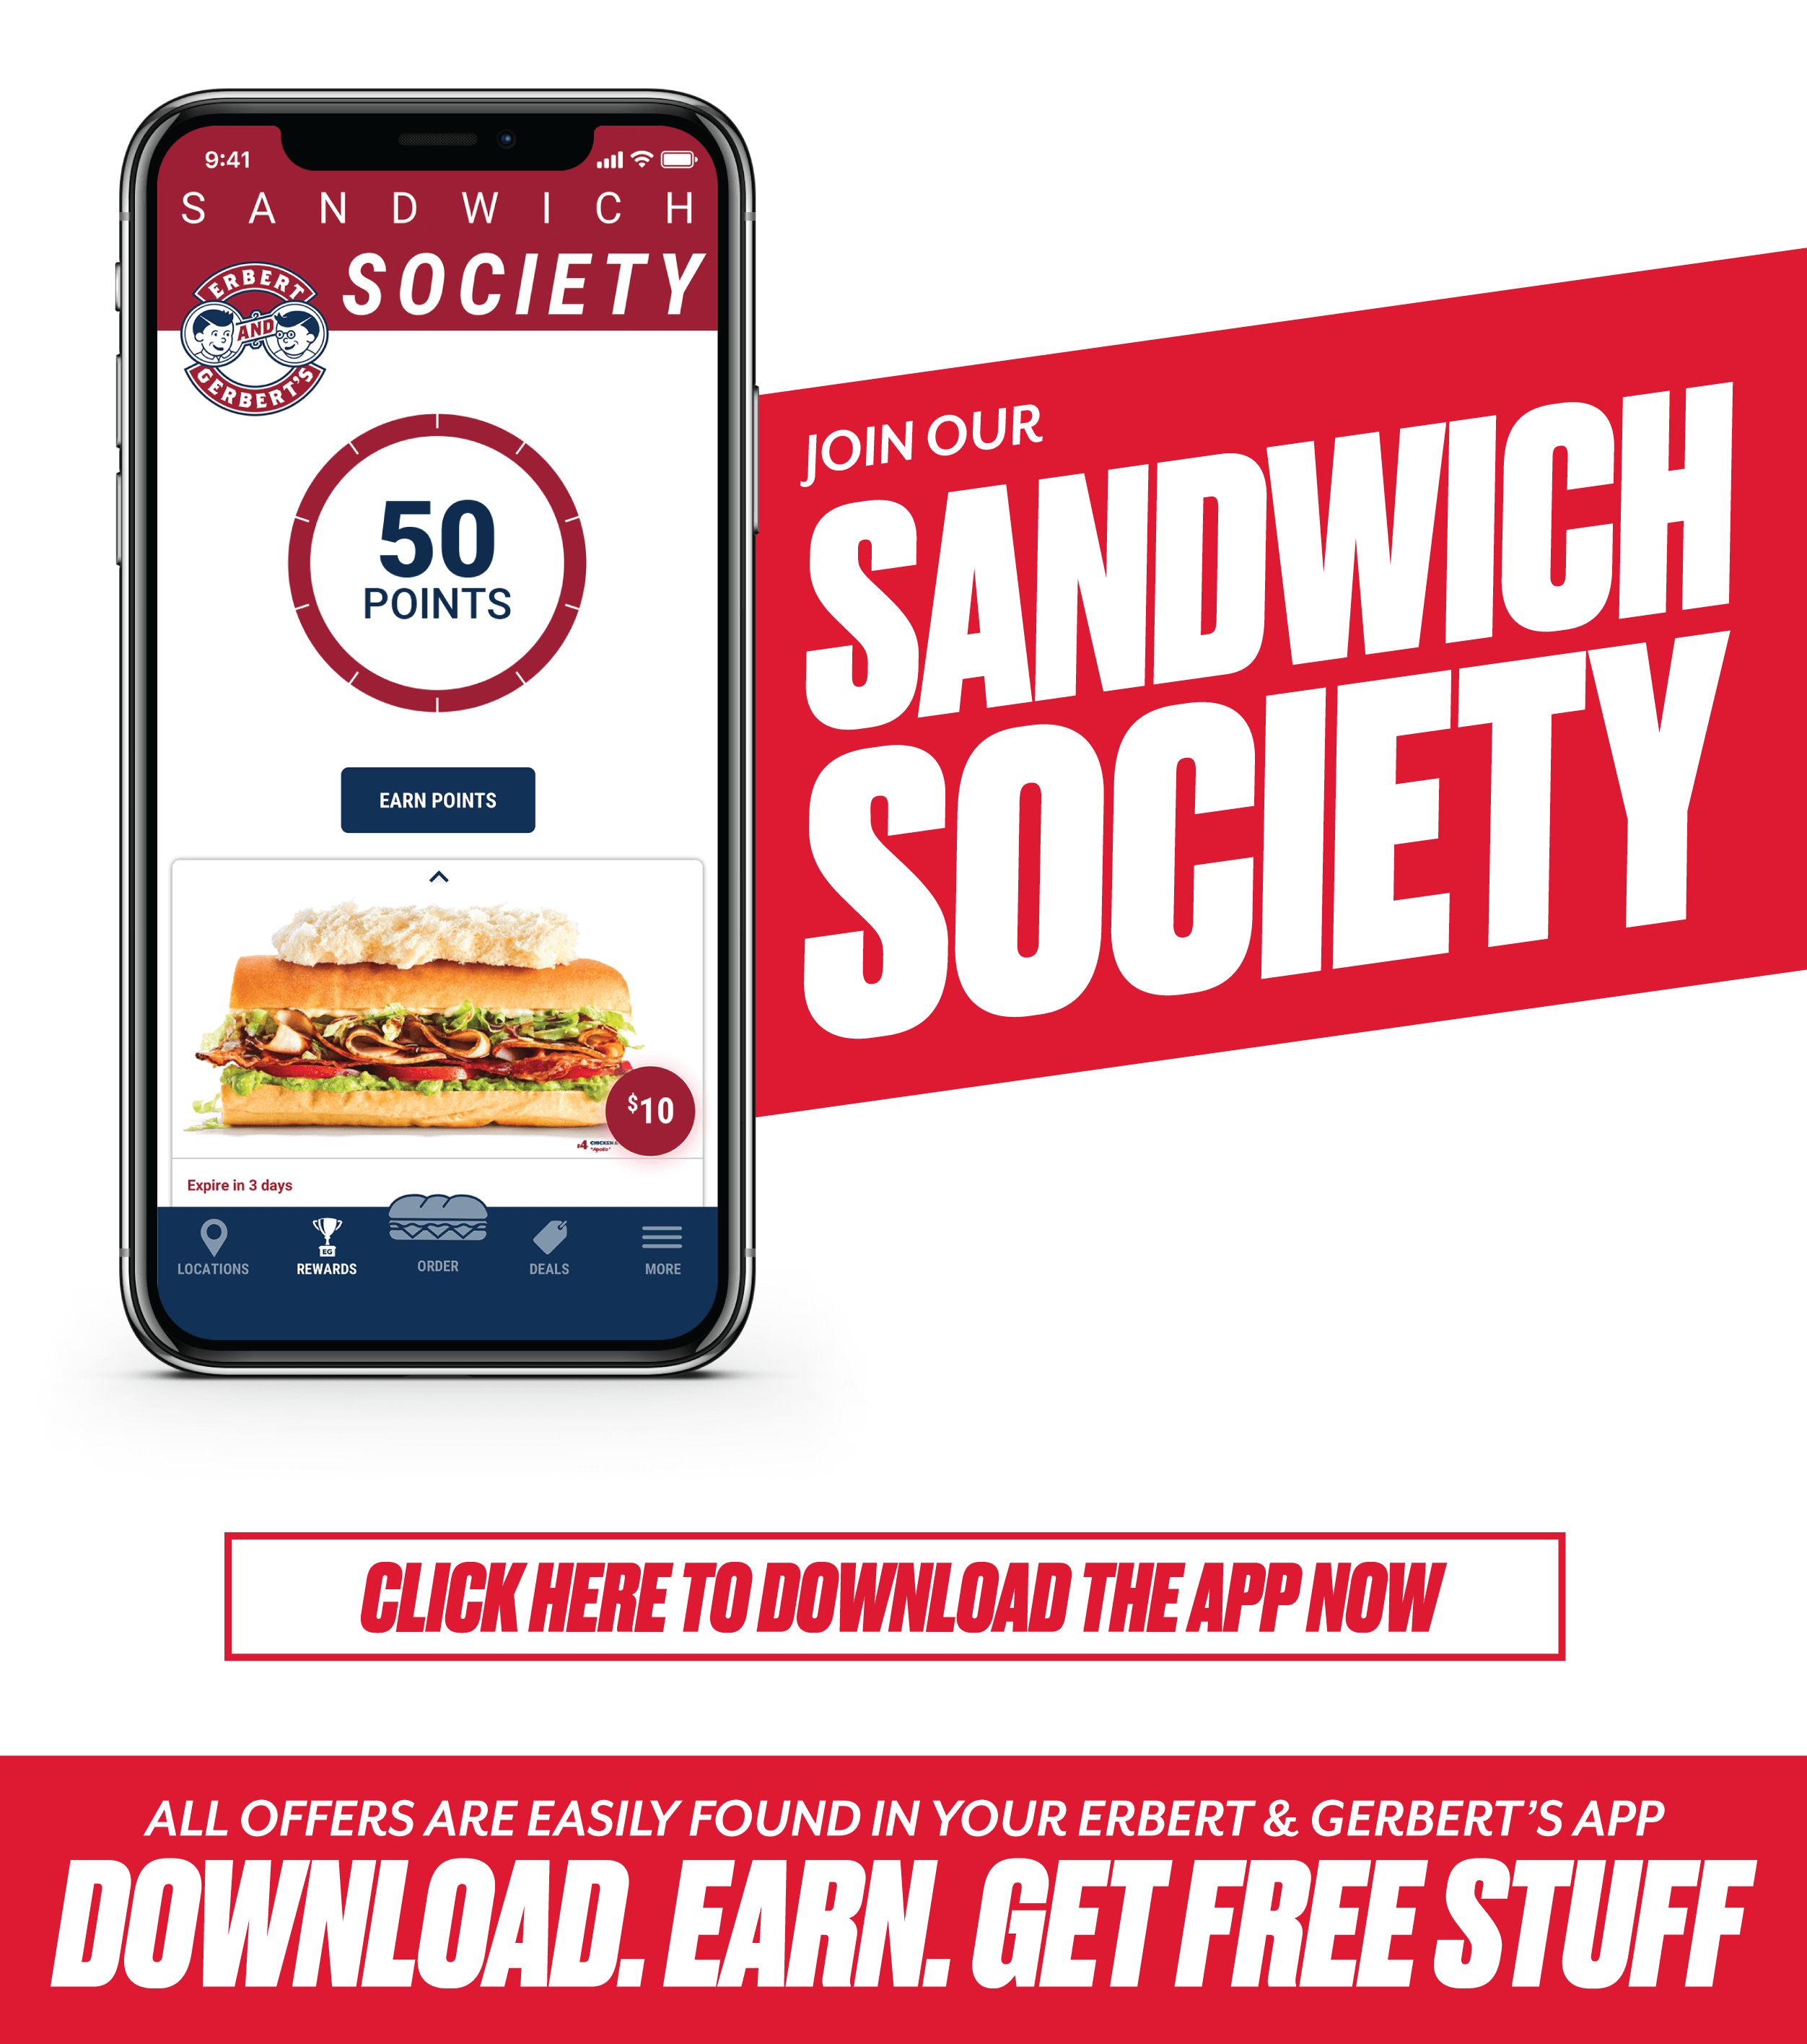 download the erbert & gerberts app to join the sandwich society